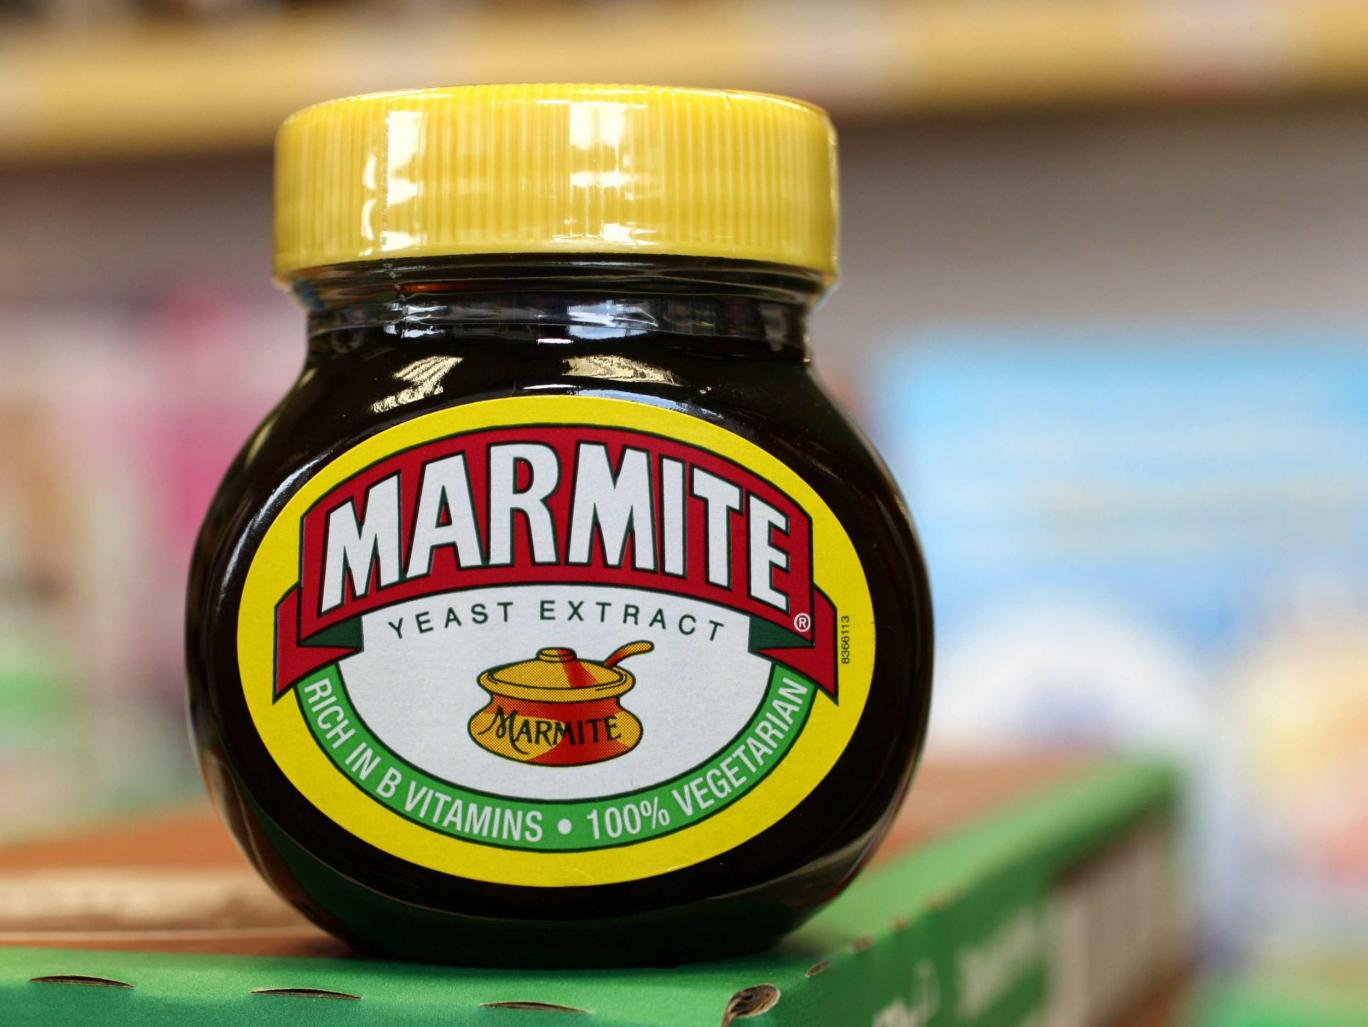 Marmite is produced in the UK but supplied to supermarkets by multinational company Unilever.